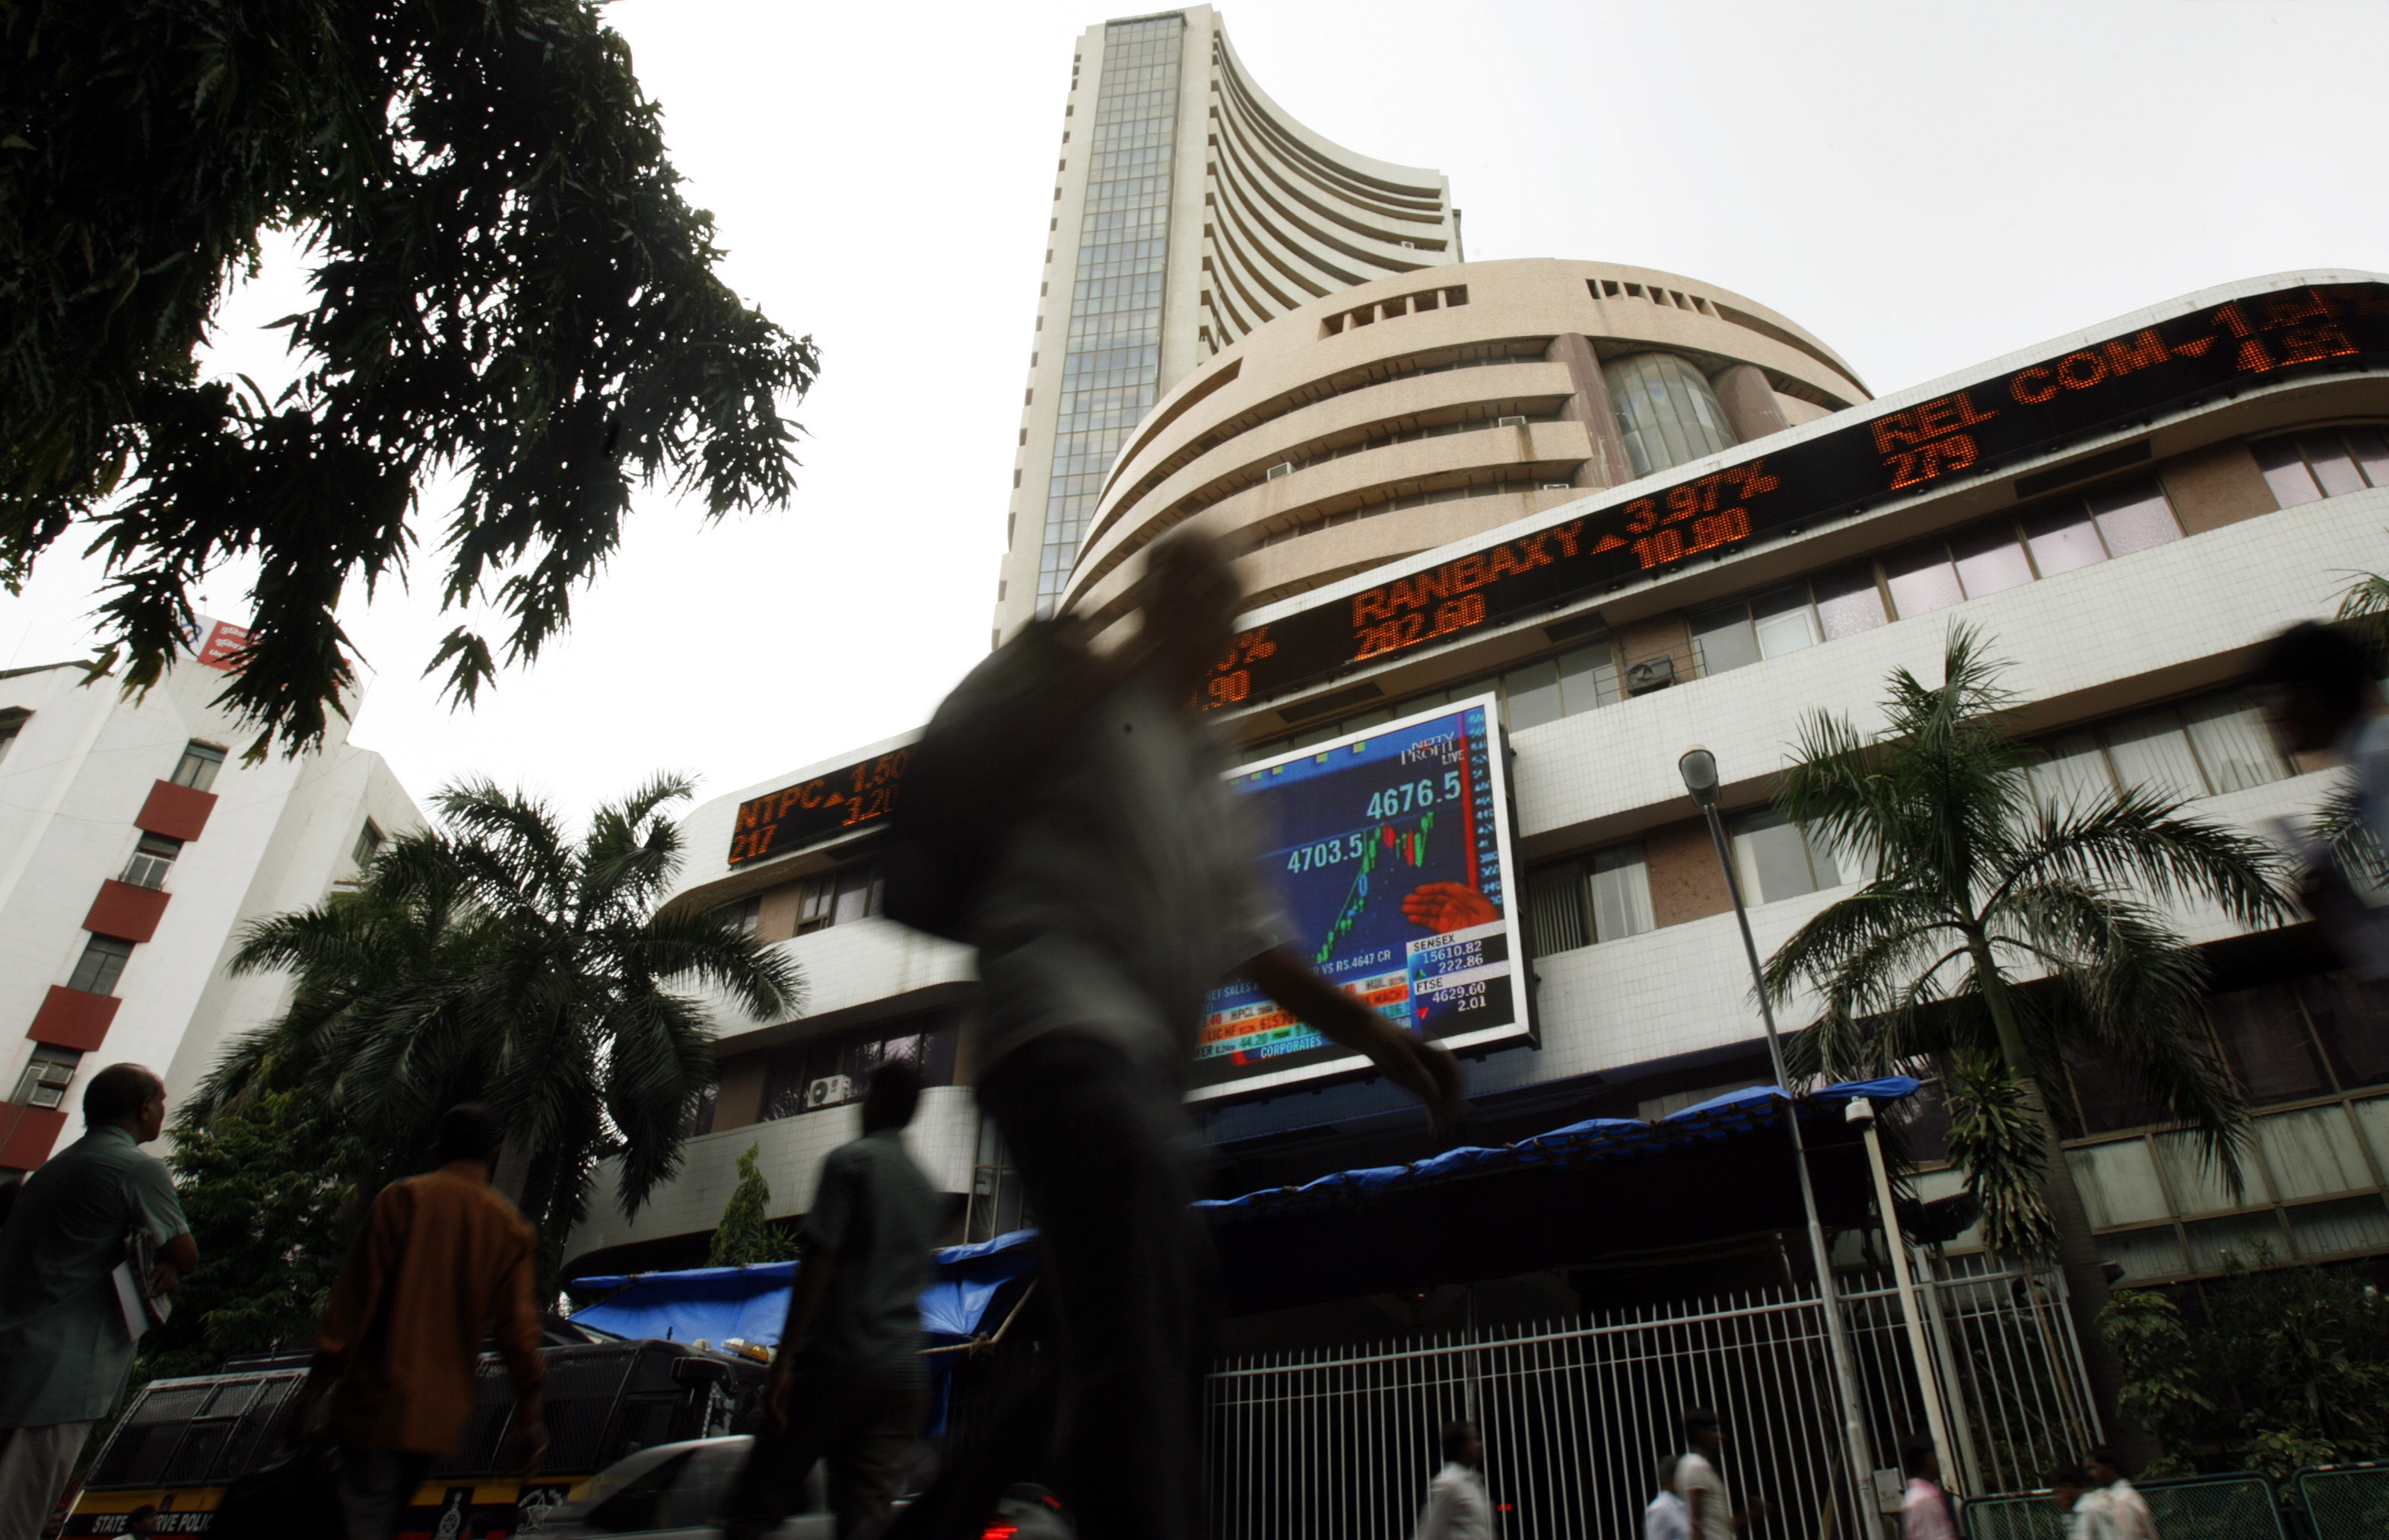 Sensex jumps on rate cut hopes, good fiscal deficit number